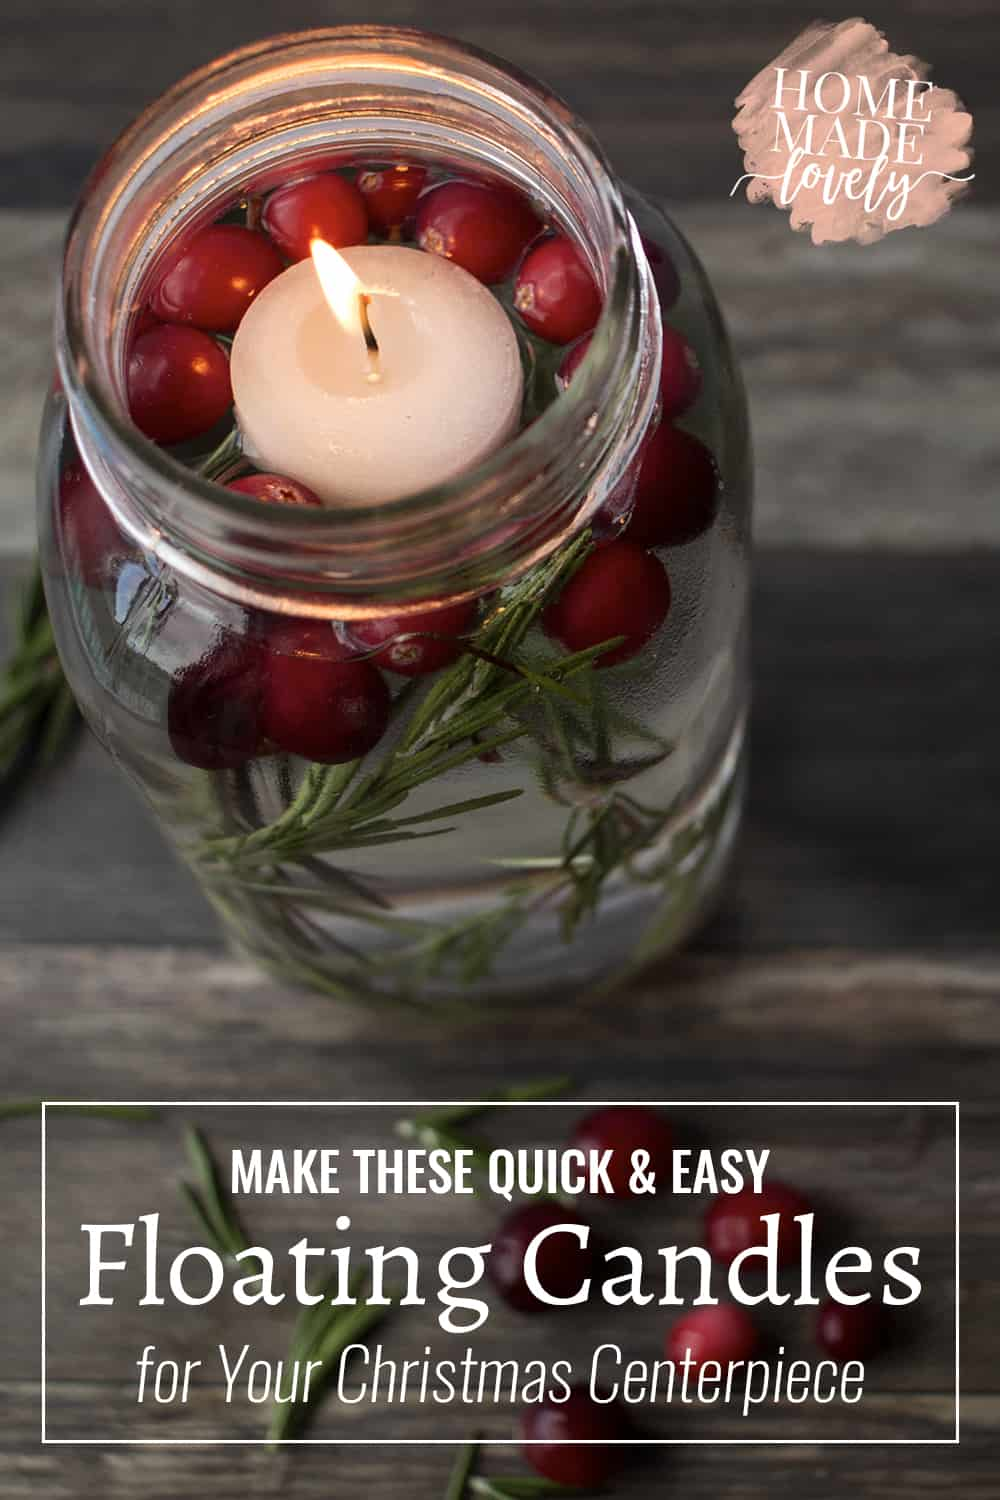 Make these quick and easy floating candles for your Christmas centerpiece this year. With only a few ingredients, they can light up your holiday table with Christmas cheer!